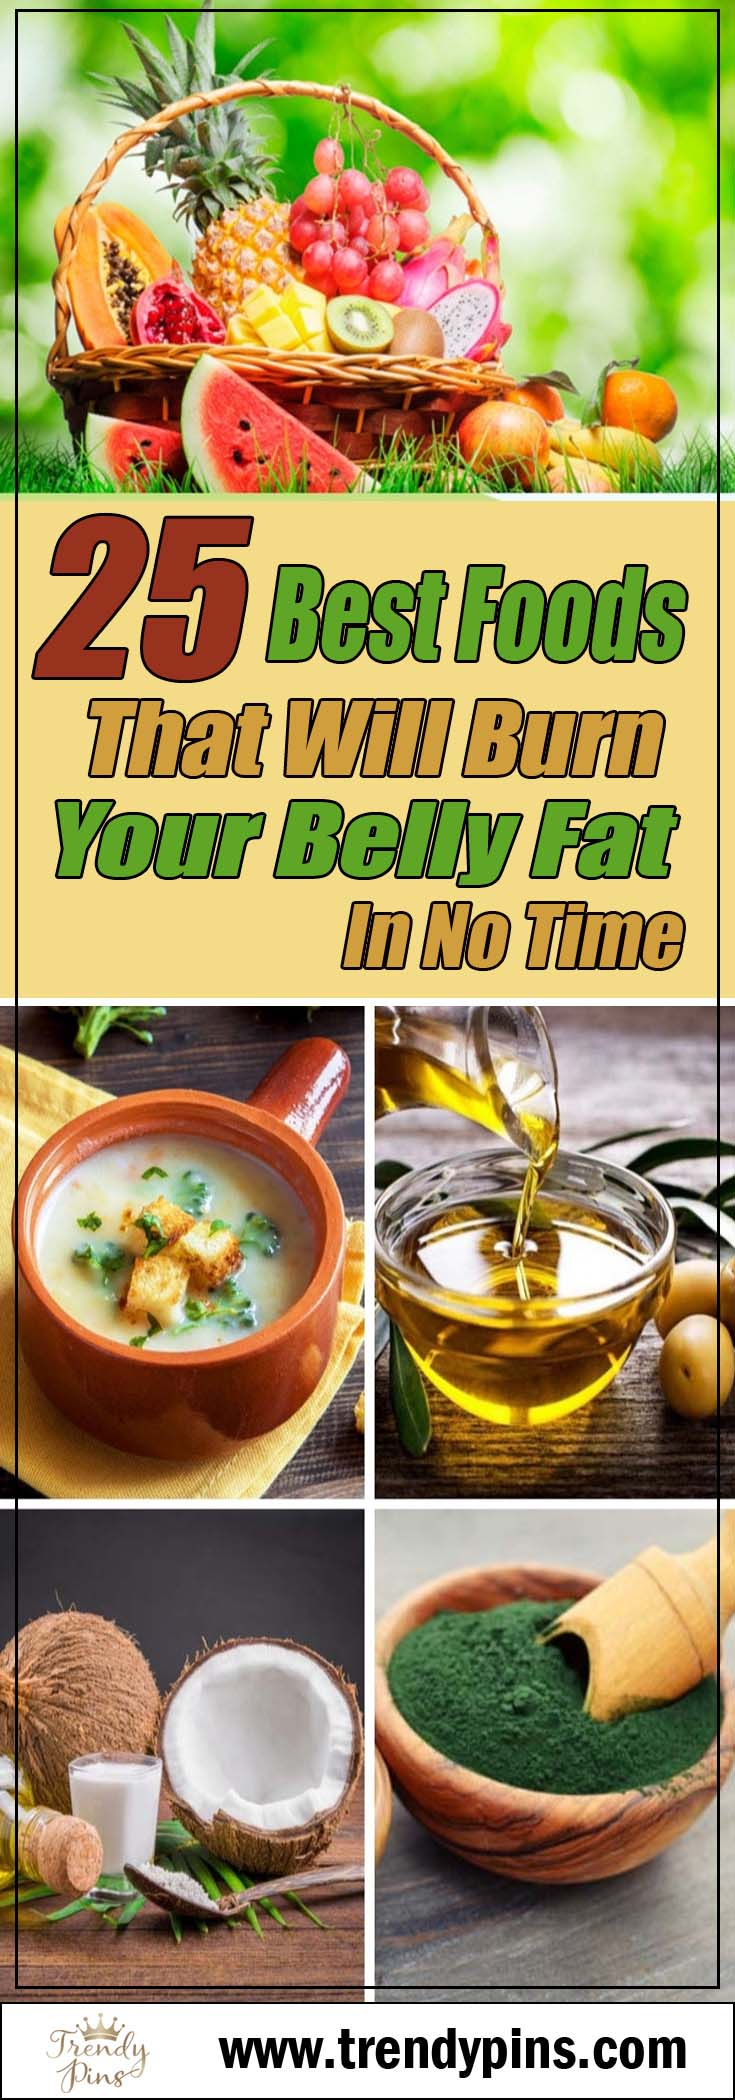 25 Best Foods That Will Burn Your Belly Fat In No Time #healthy living #belly fat #foods #trendypins